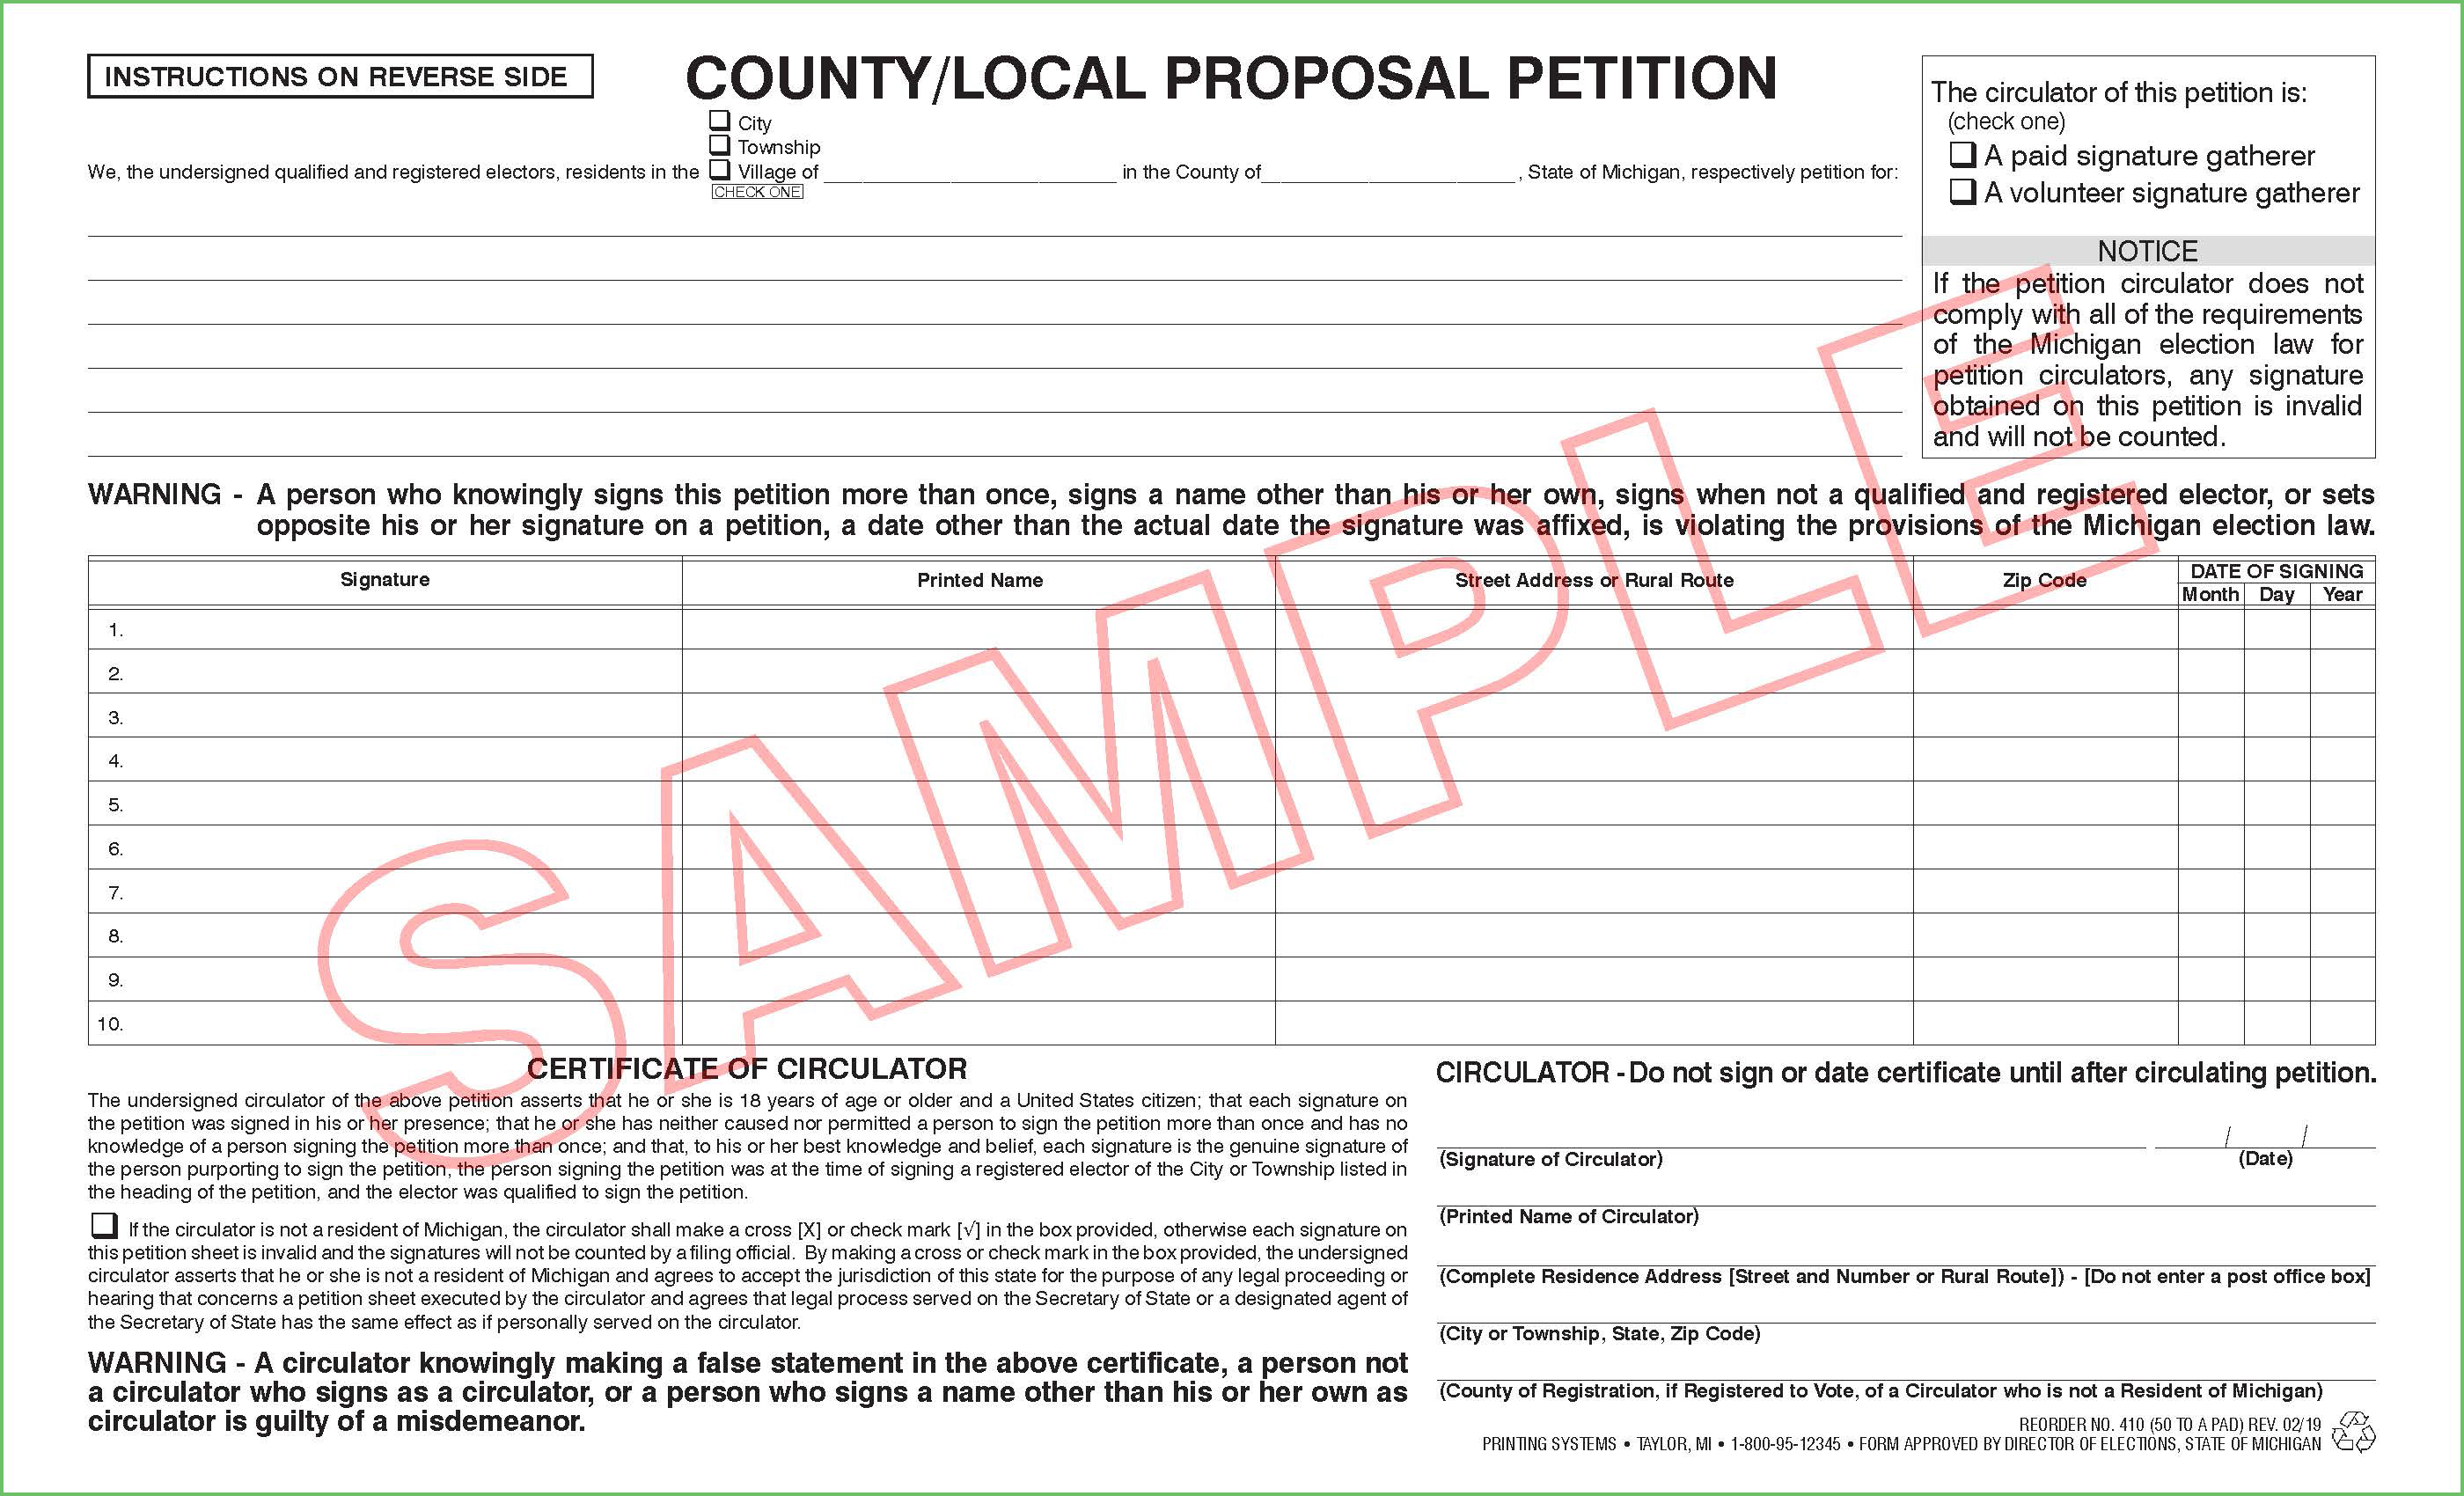 410 County/Local Proposal Petition (Ci/Twp/Village) (50 per pad)